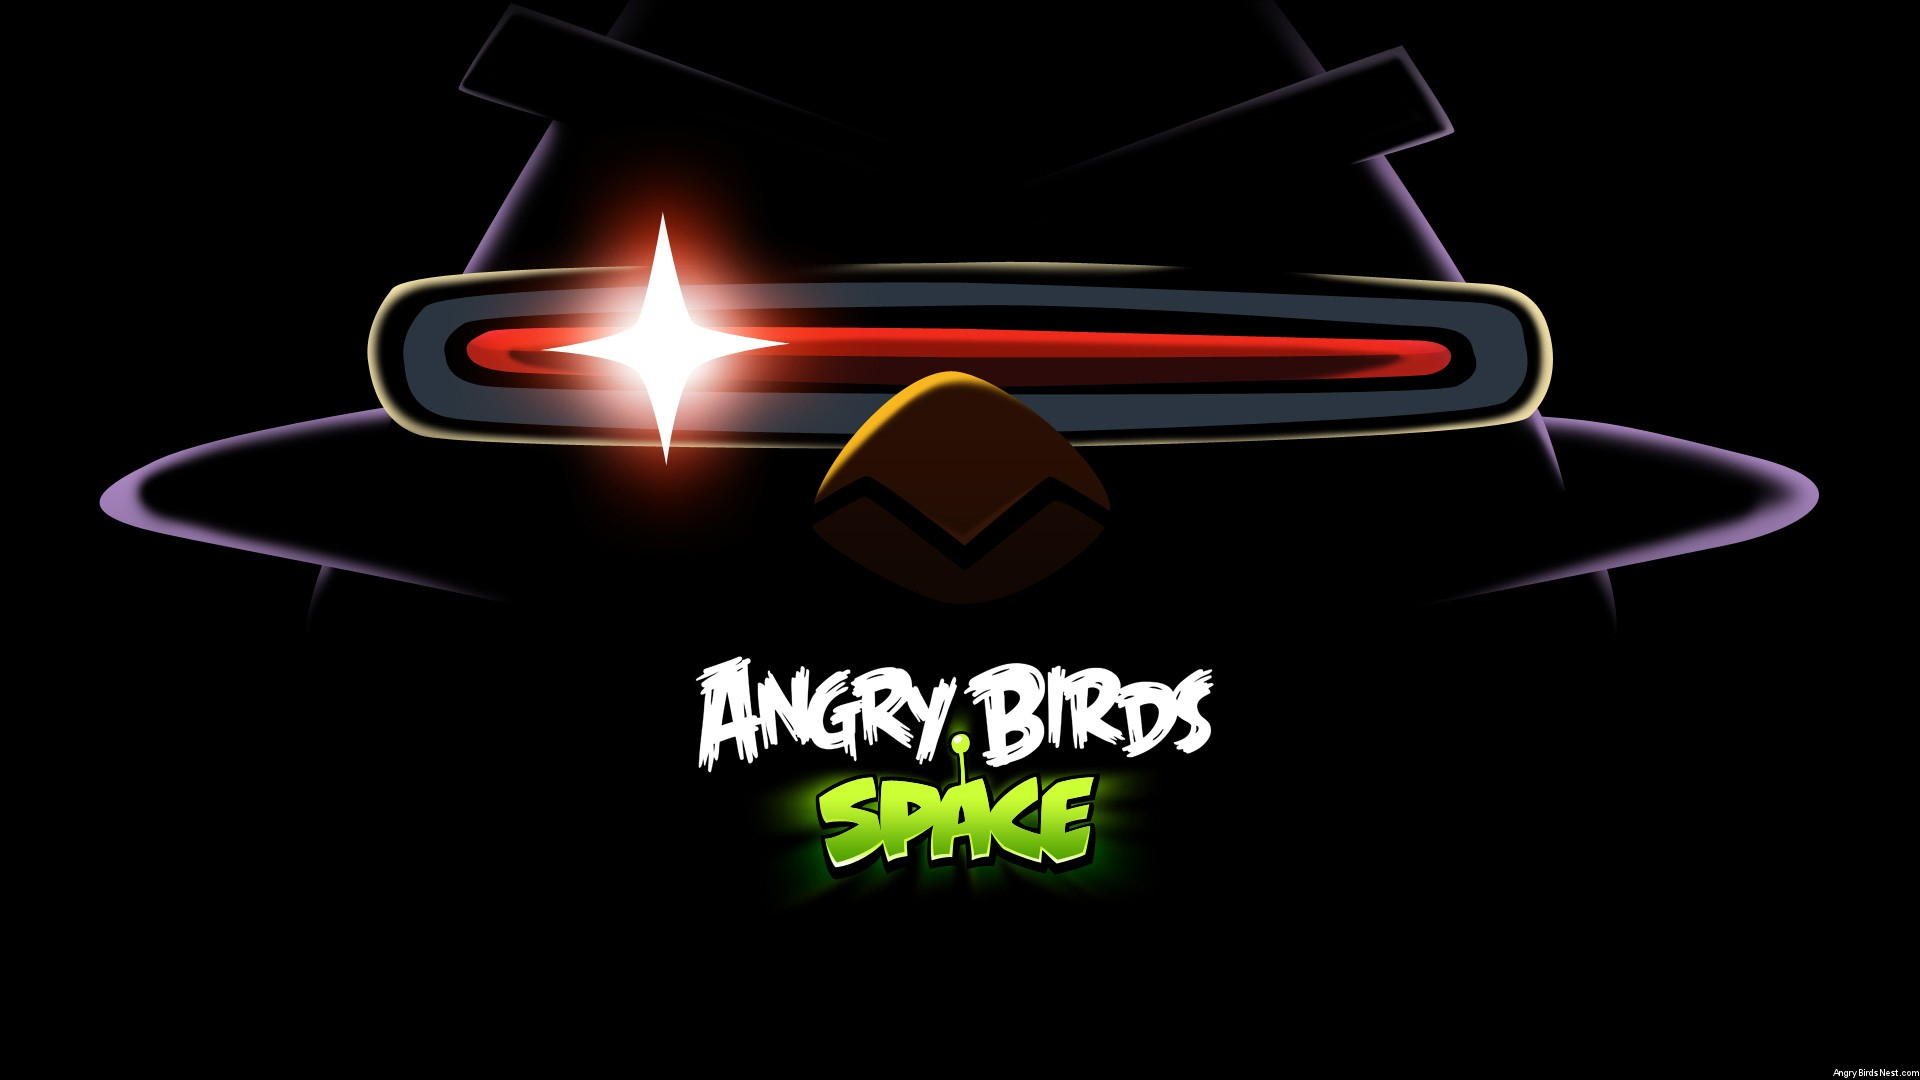 Angry Birds Space Laser Bird Dark Desktop Wallpaper 1920x1080